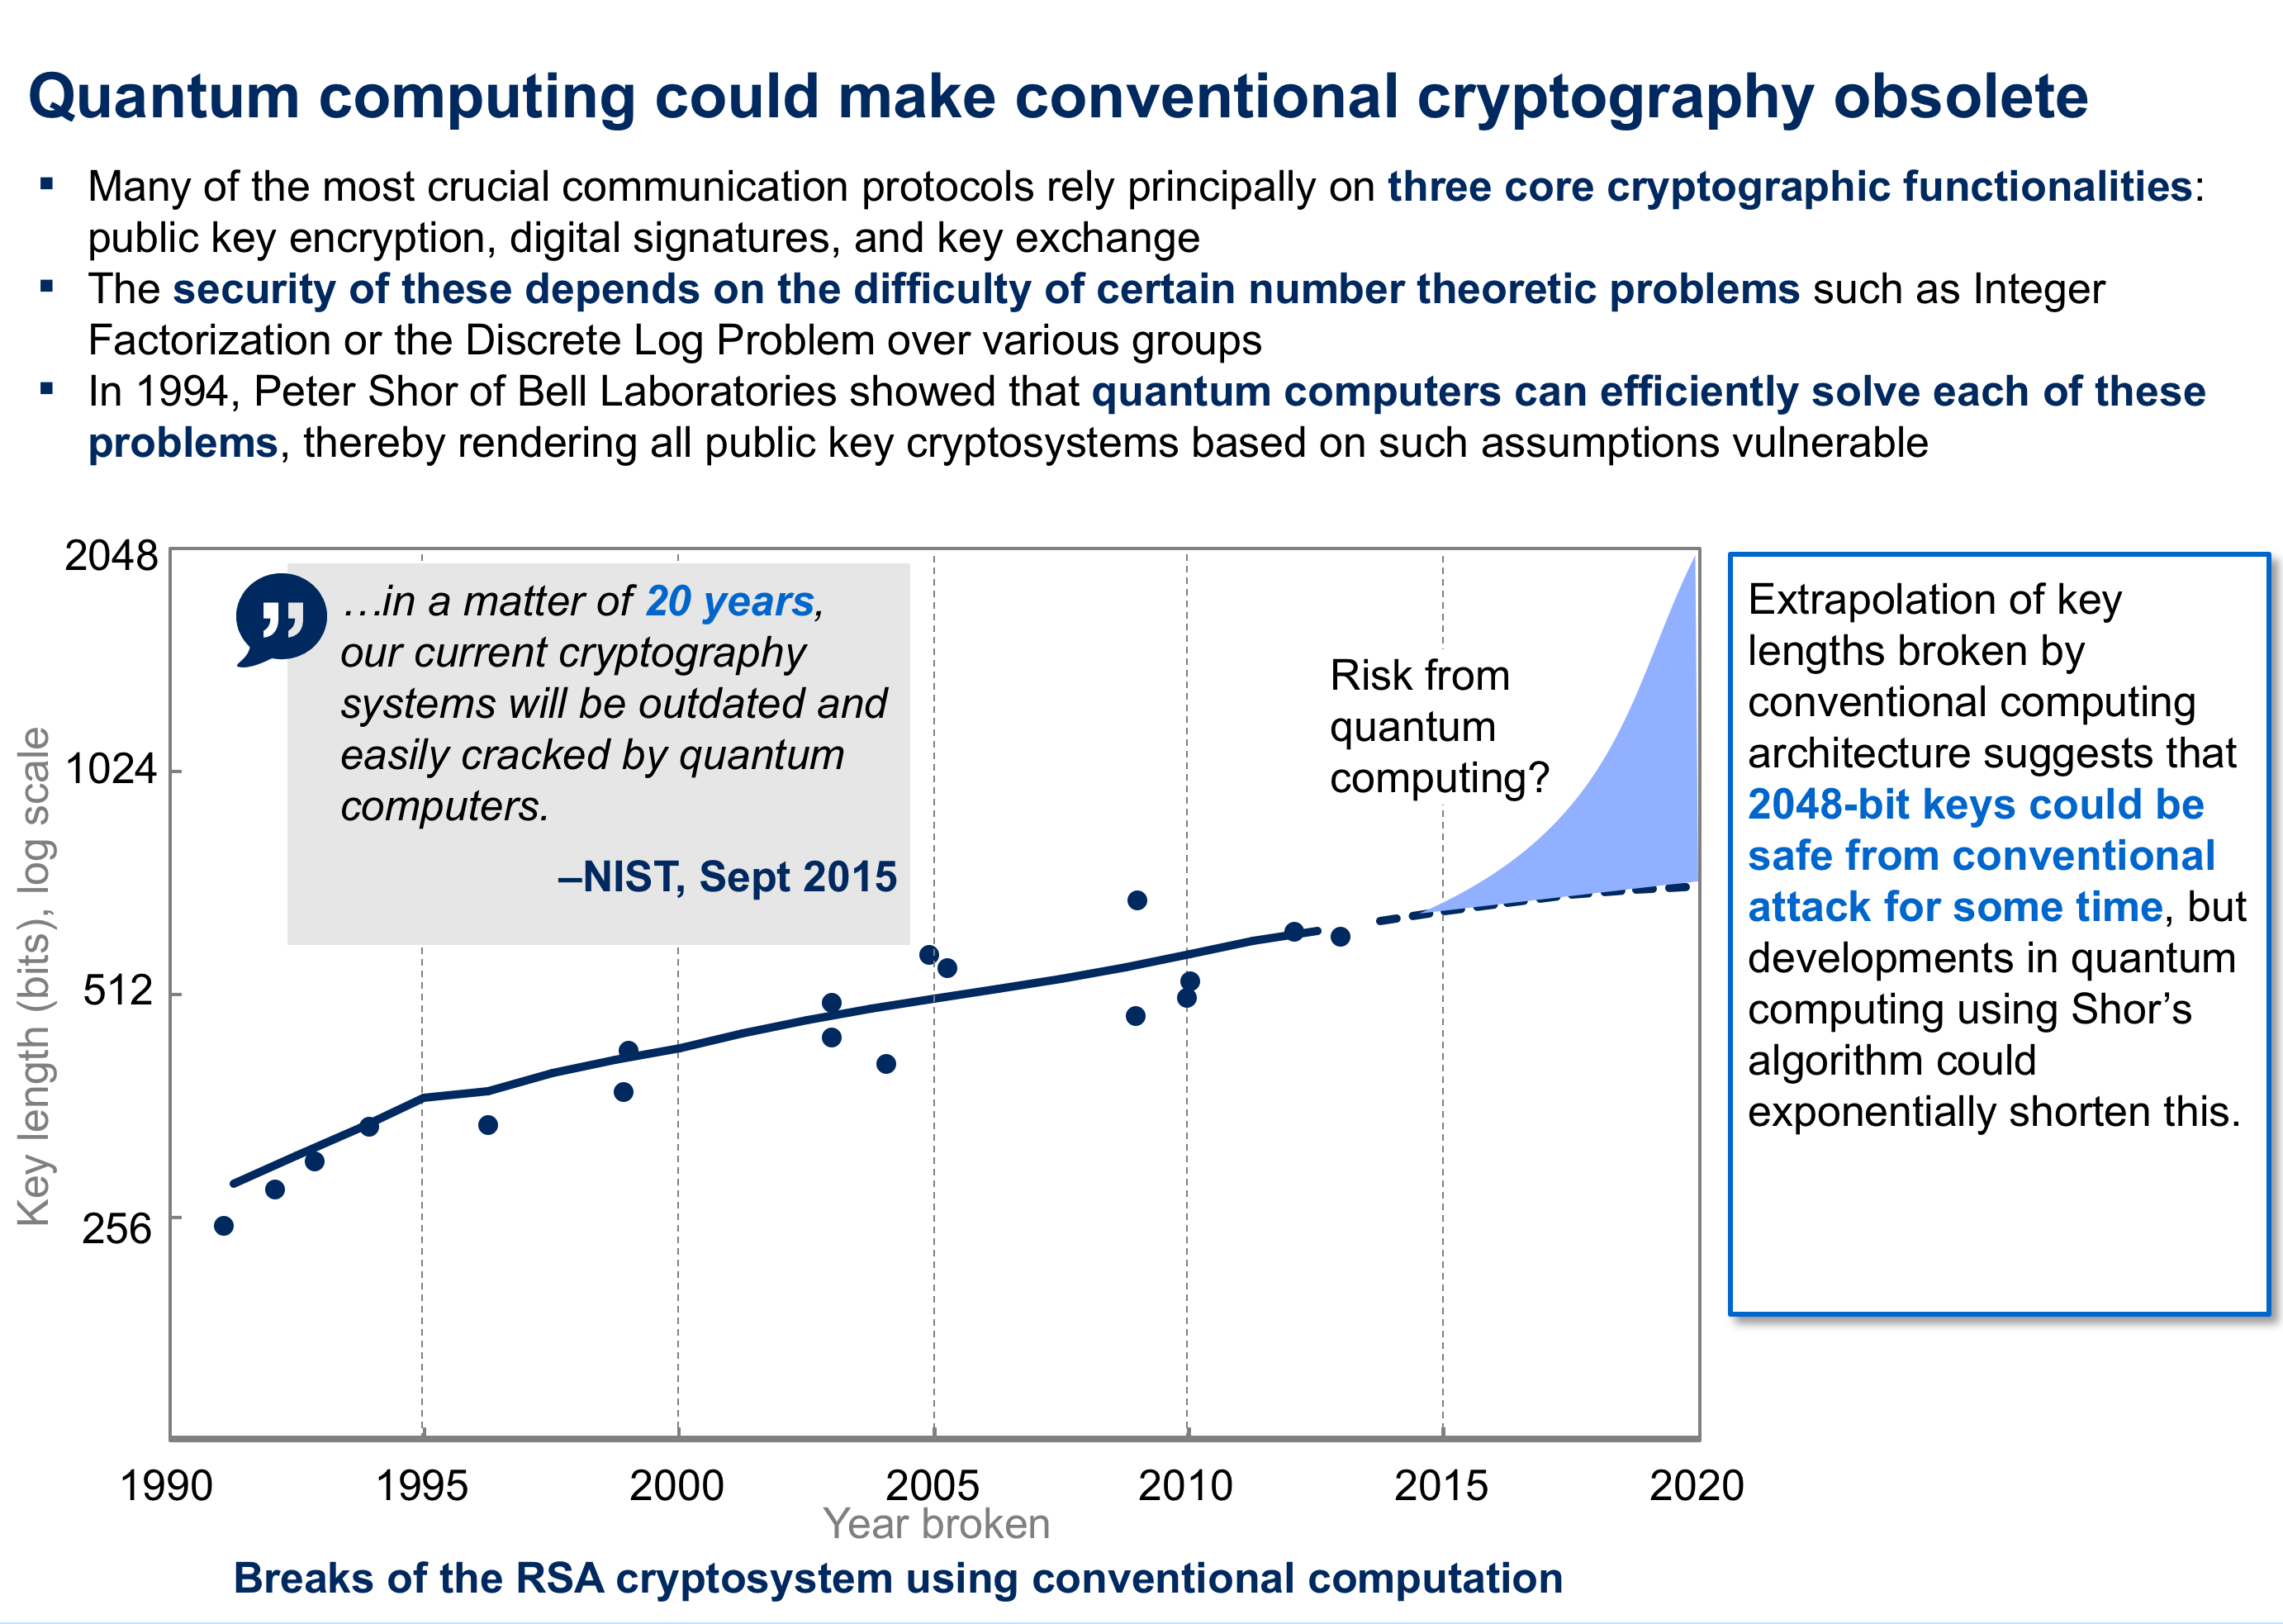 Quantum computing could make conventional cryptography obsolete